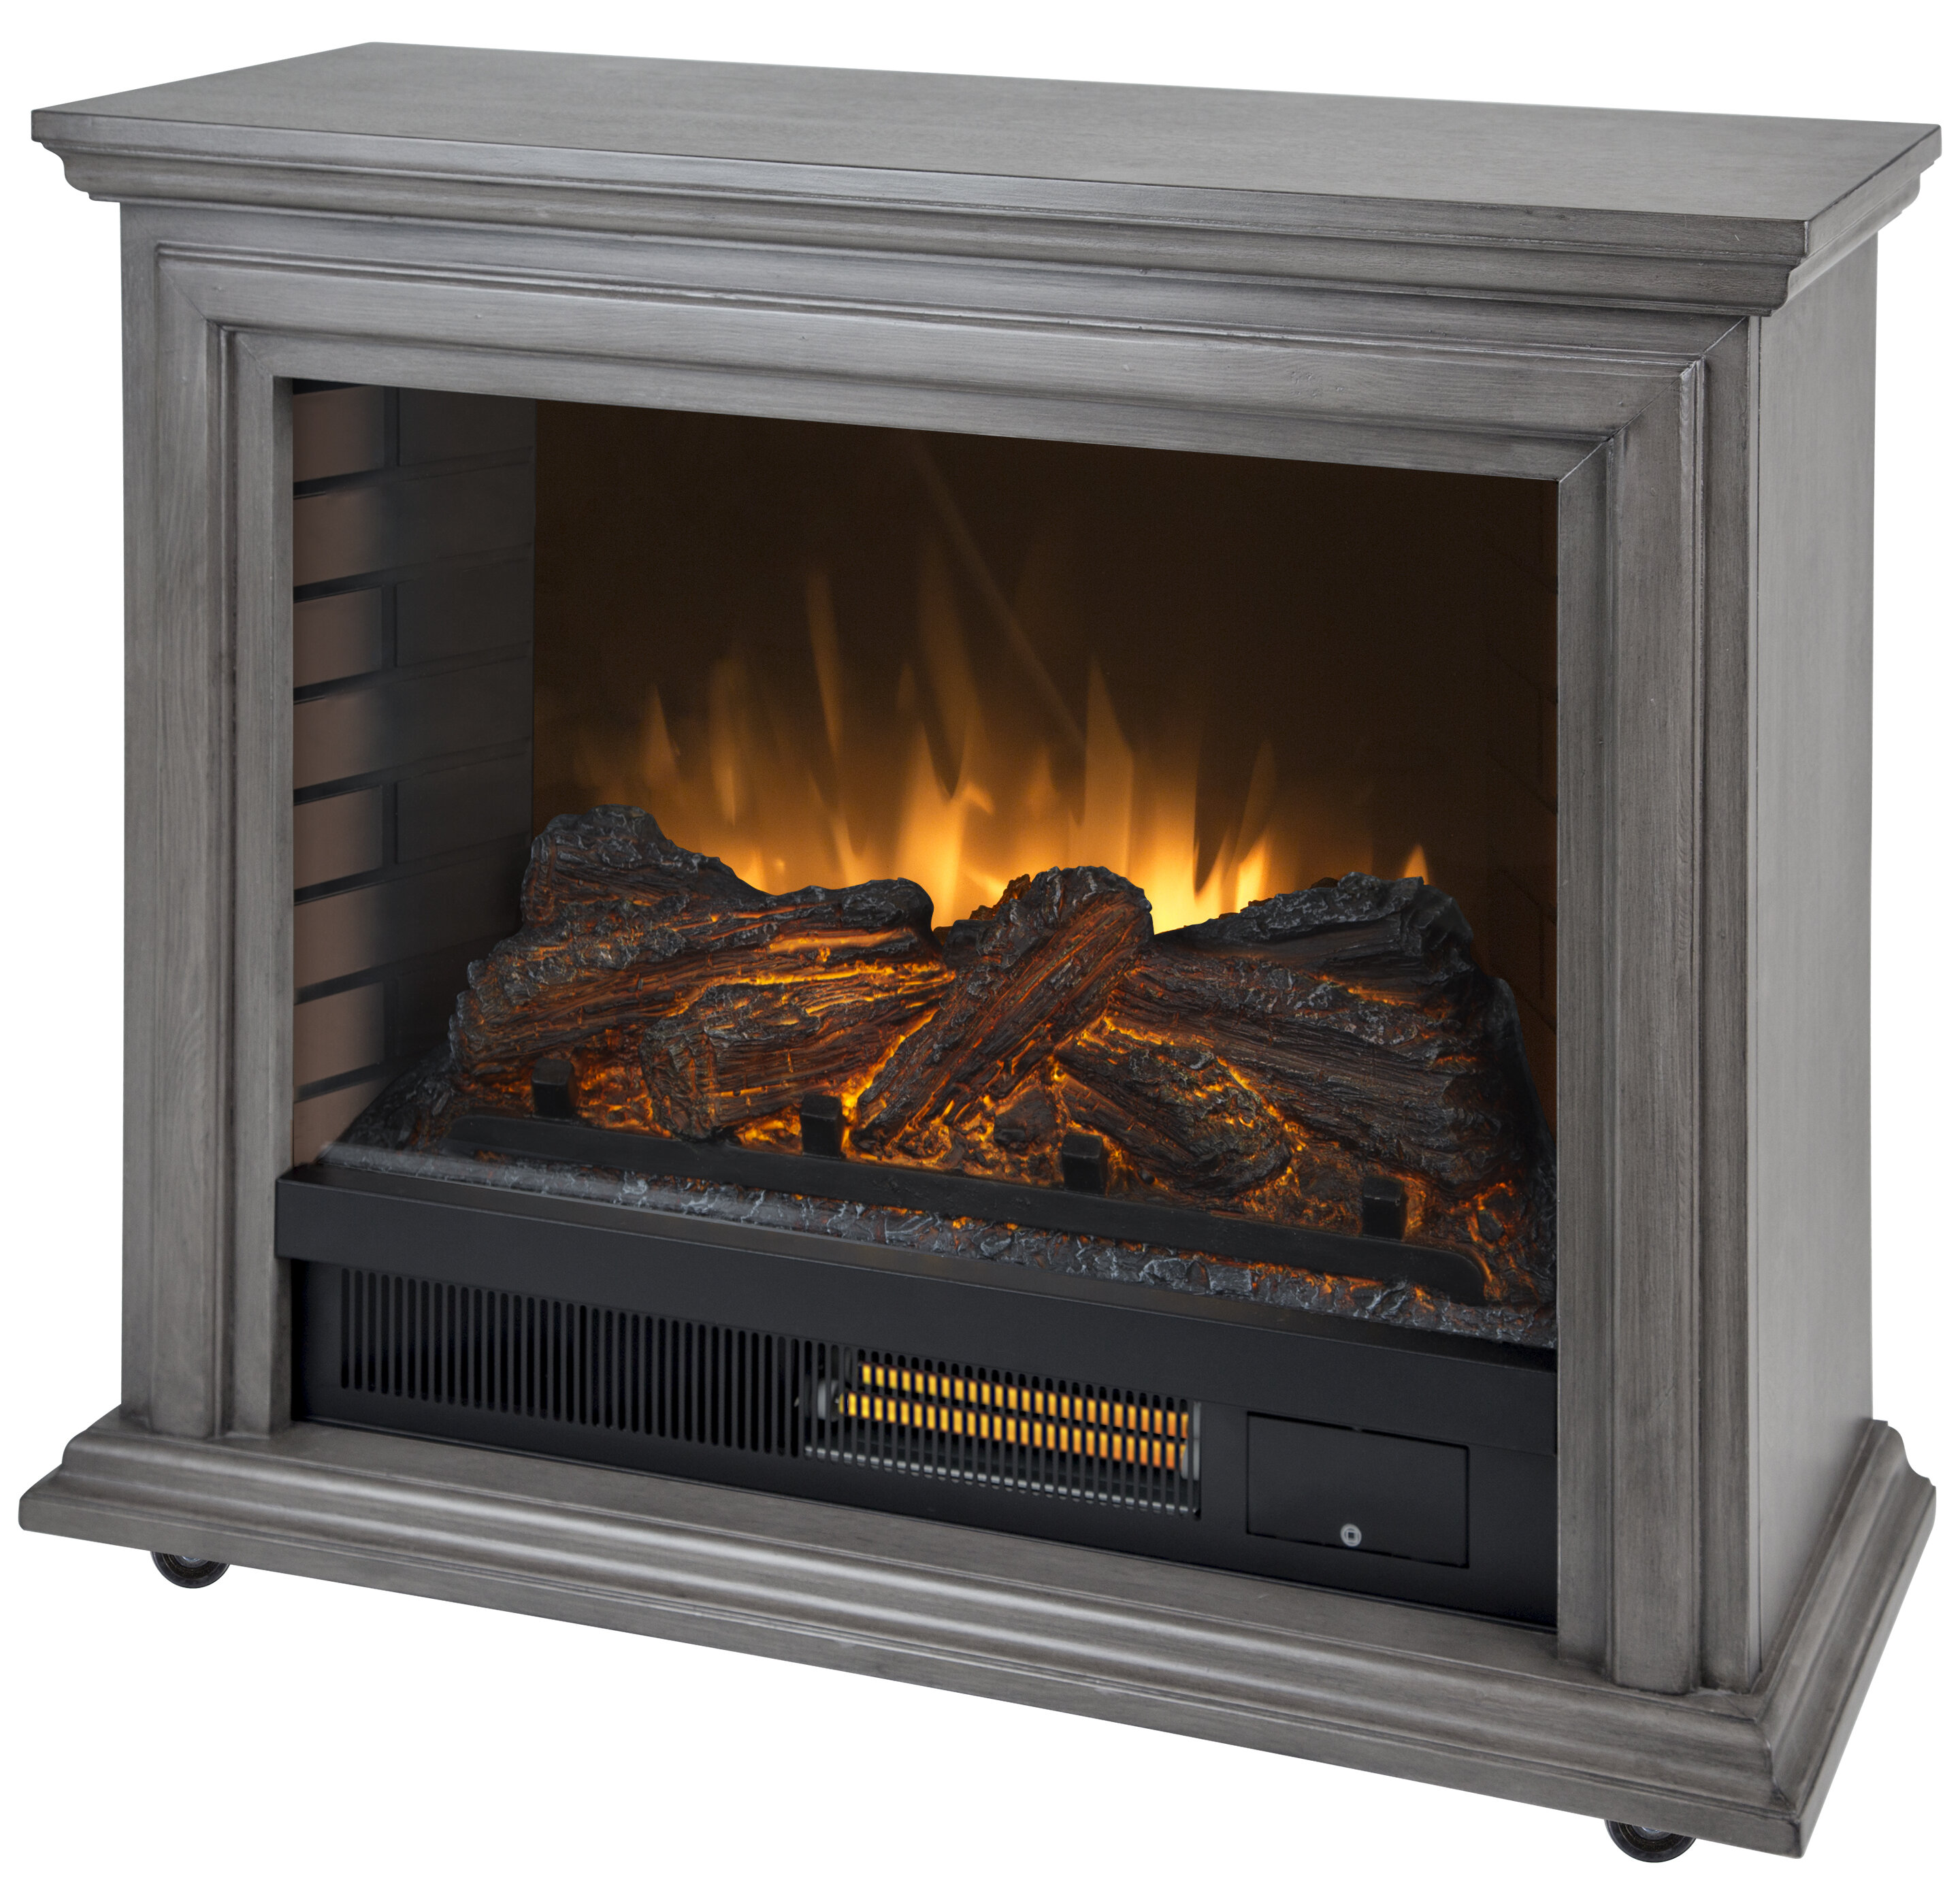 Charlton Home Mashpee Electric Fireplace Reviews Wayfair